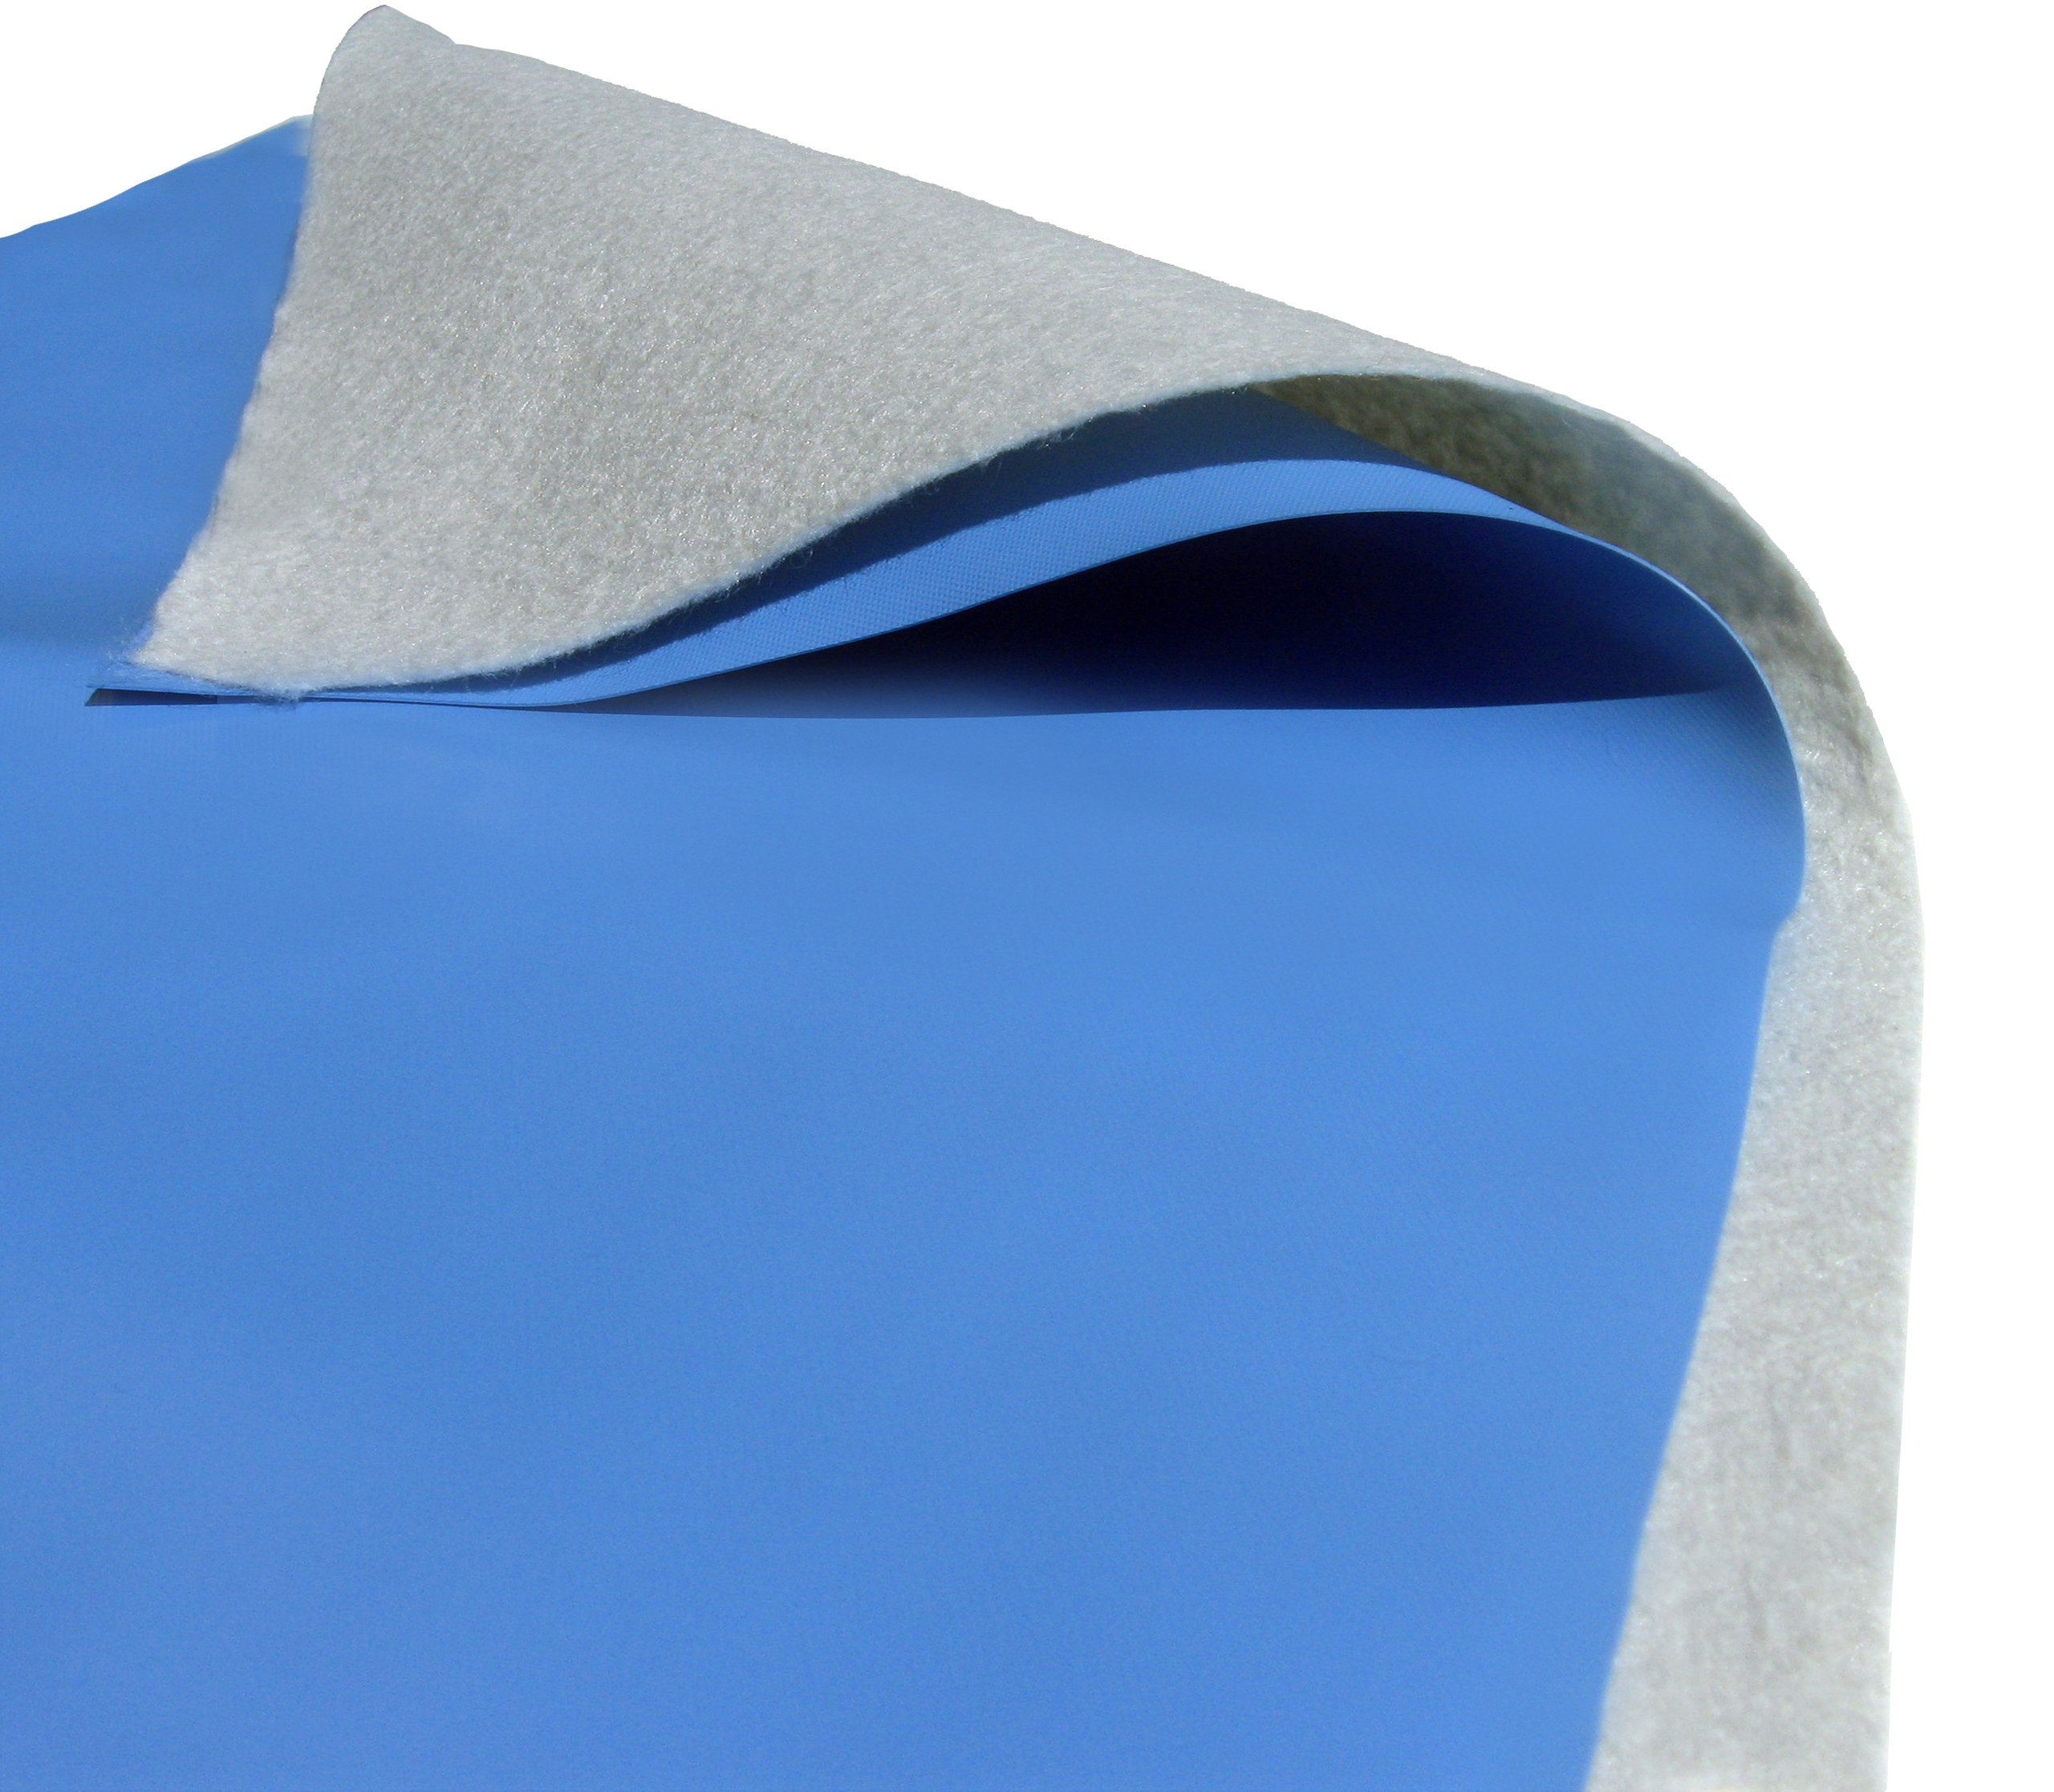 Blue Wave 12-Feet x 20-Feet Oval Liner Pad for Above Ground Pools by Blue Wave